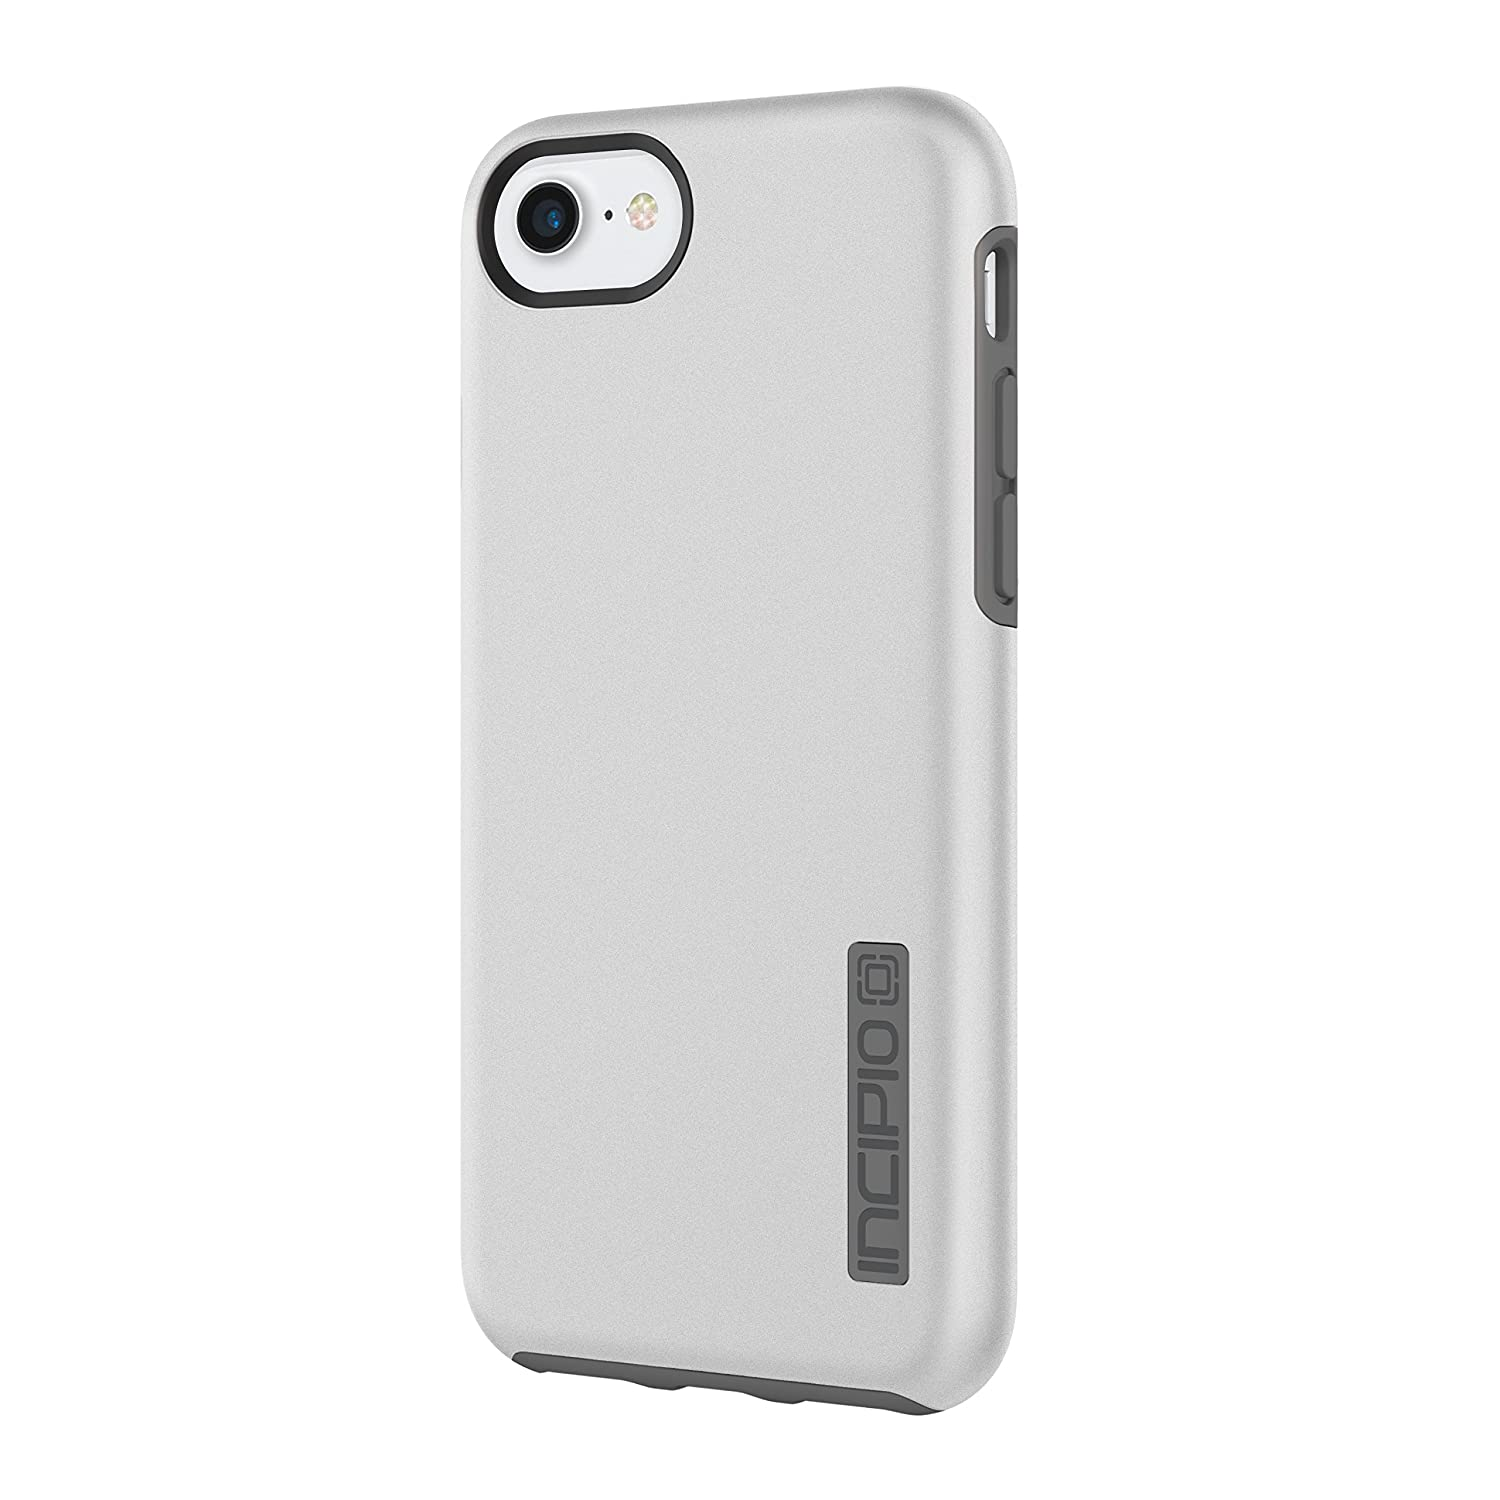 save off 85cd5 64f4f iPhone 7 Case, Incipio [Hard Shell] [Dual Layer] DualPro Case for iPhone  7-Iridescent Silver/Charcoal